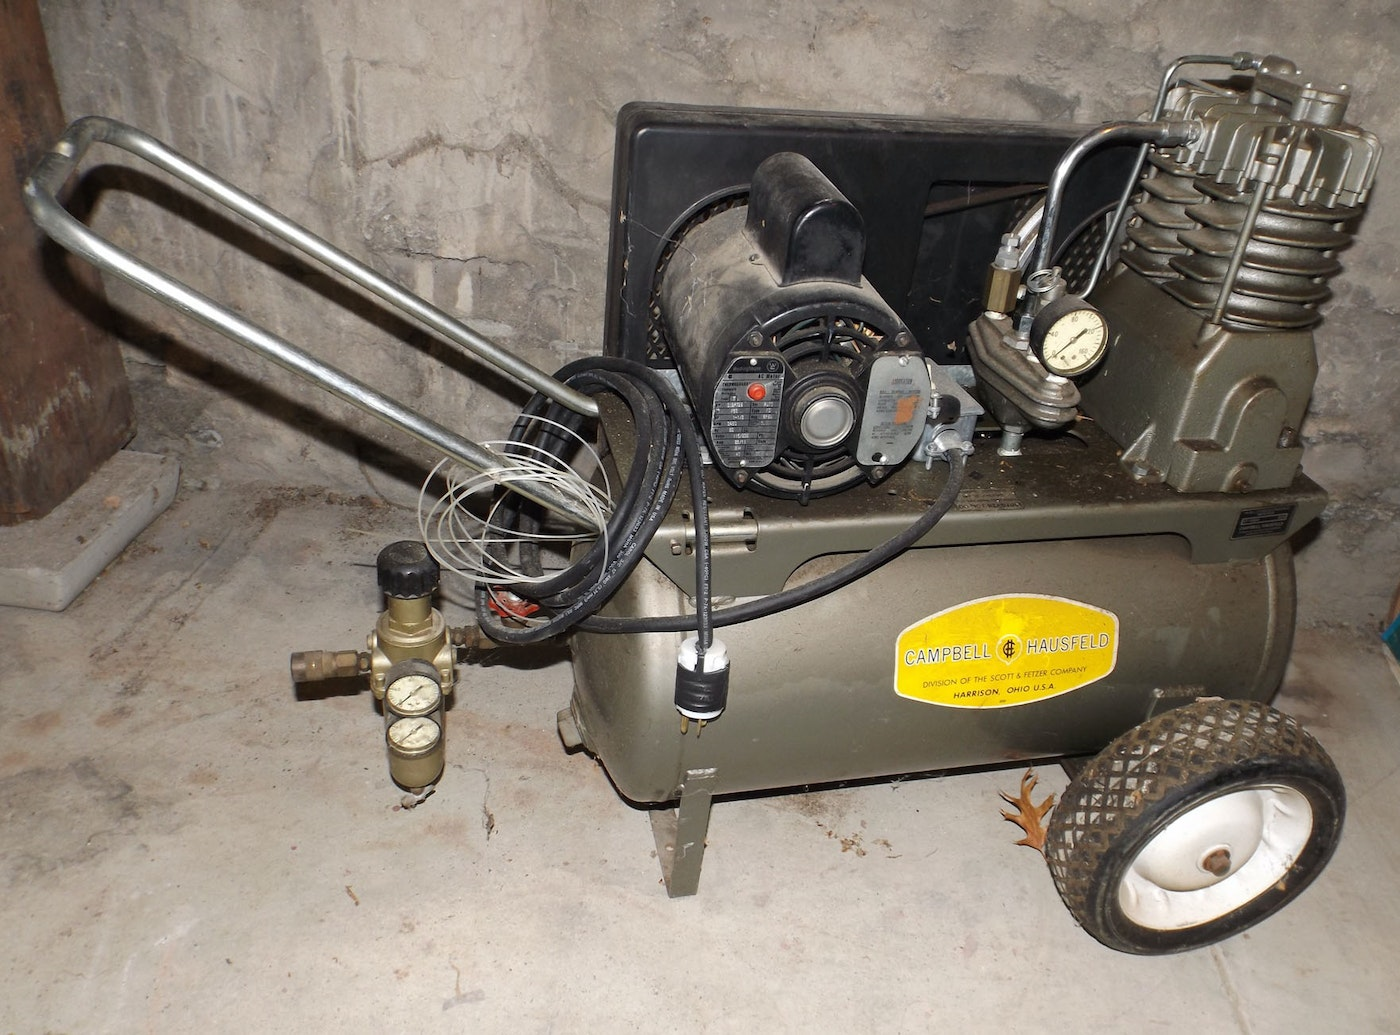 Older Campbell Hausfeld Air Compressor : Cambell hausfeld air compressor with westinghouse motor ebth